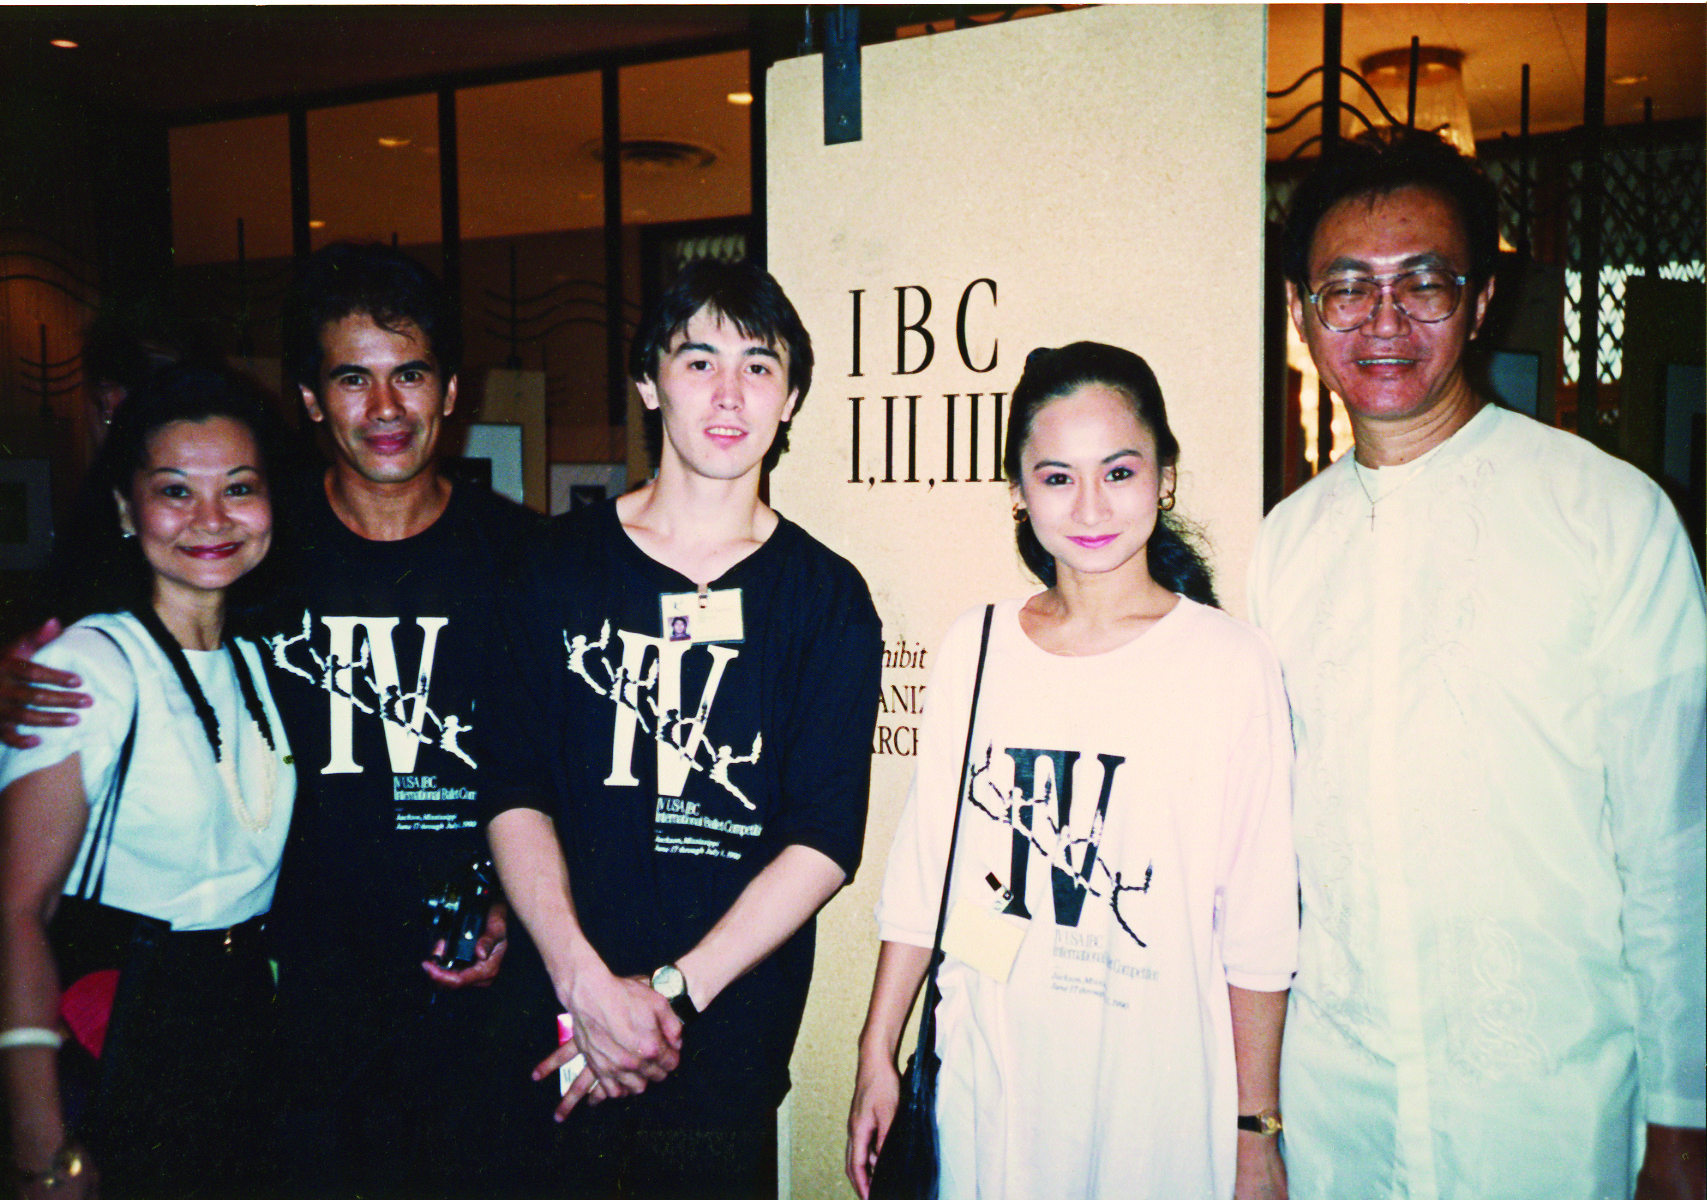 Aside from coach Steve Villaruz (rightmost), Lisa came with her mom Susan Macuja (leftmost) and her non-competing partner, premiere danseur Nonoy Froilan. The two-week IBC is a chance for young dancers to meet their counterparts in other countries and interact with ballet teachers and legends. Among the jury members in 1990 was Japanese ballerina Yoko Morishita whom Lisa considers as her inspiration.